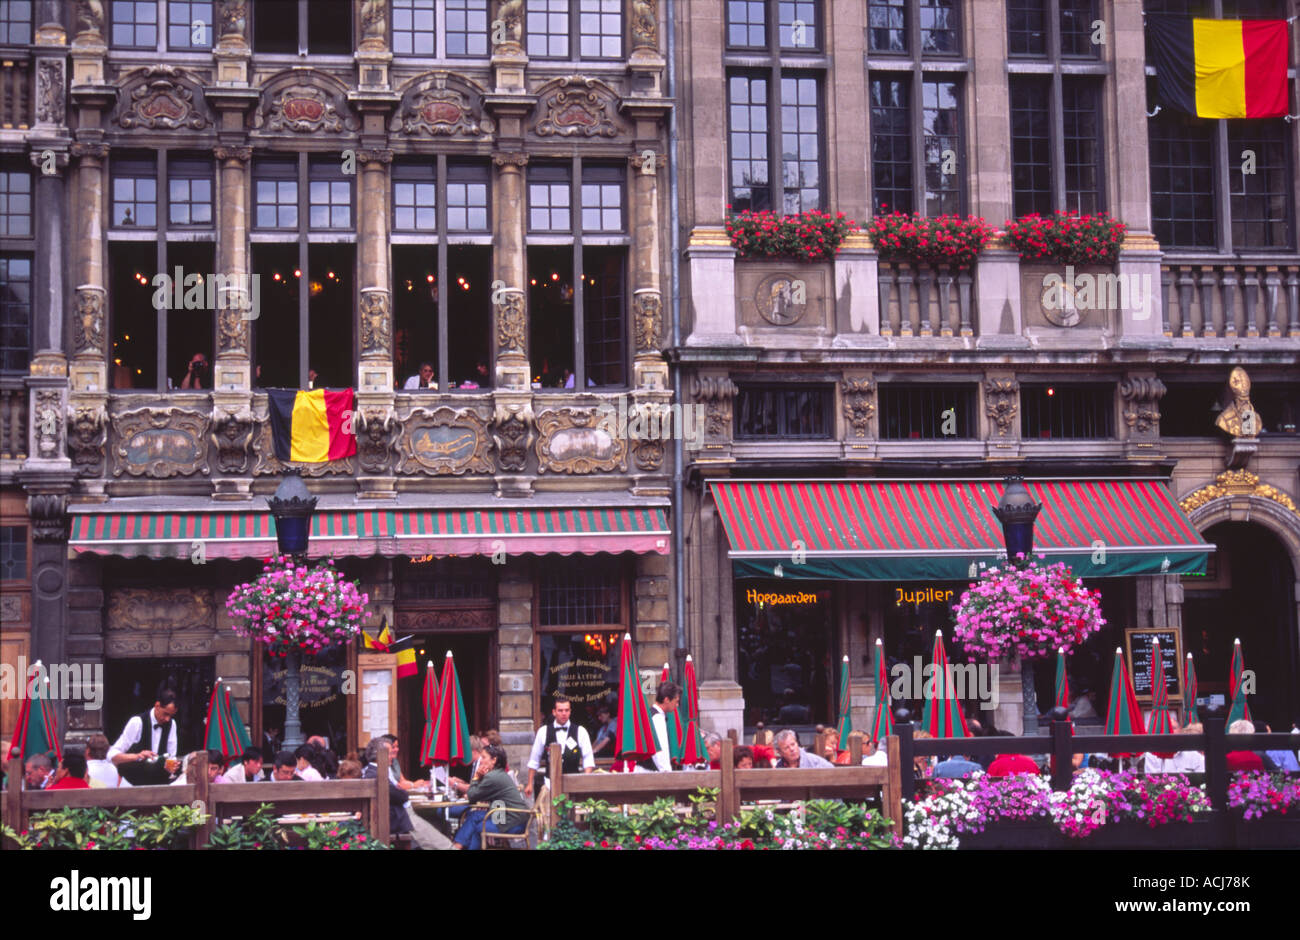 Diners in the old cafes of the Grand Place, Brussels, Belgium. Stock Photo